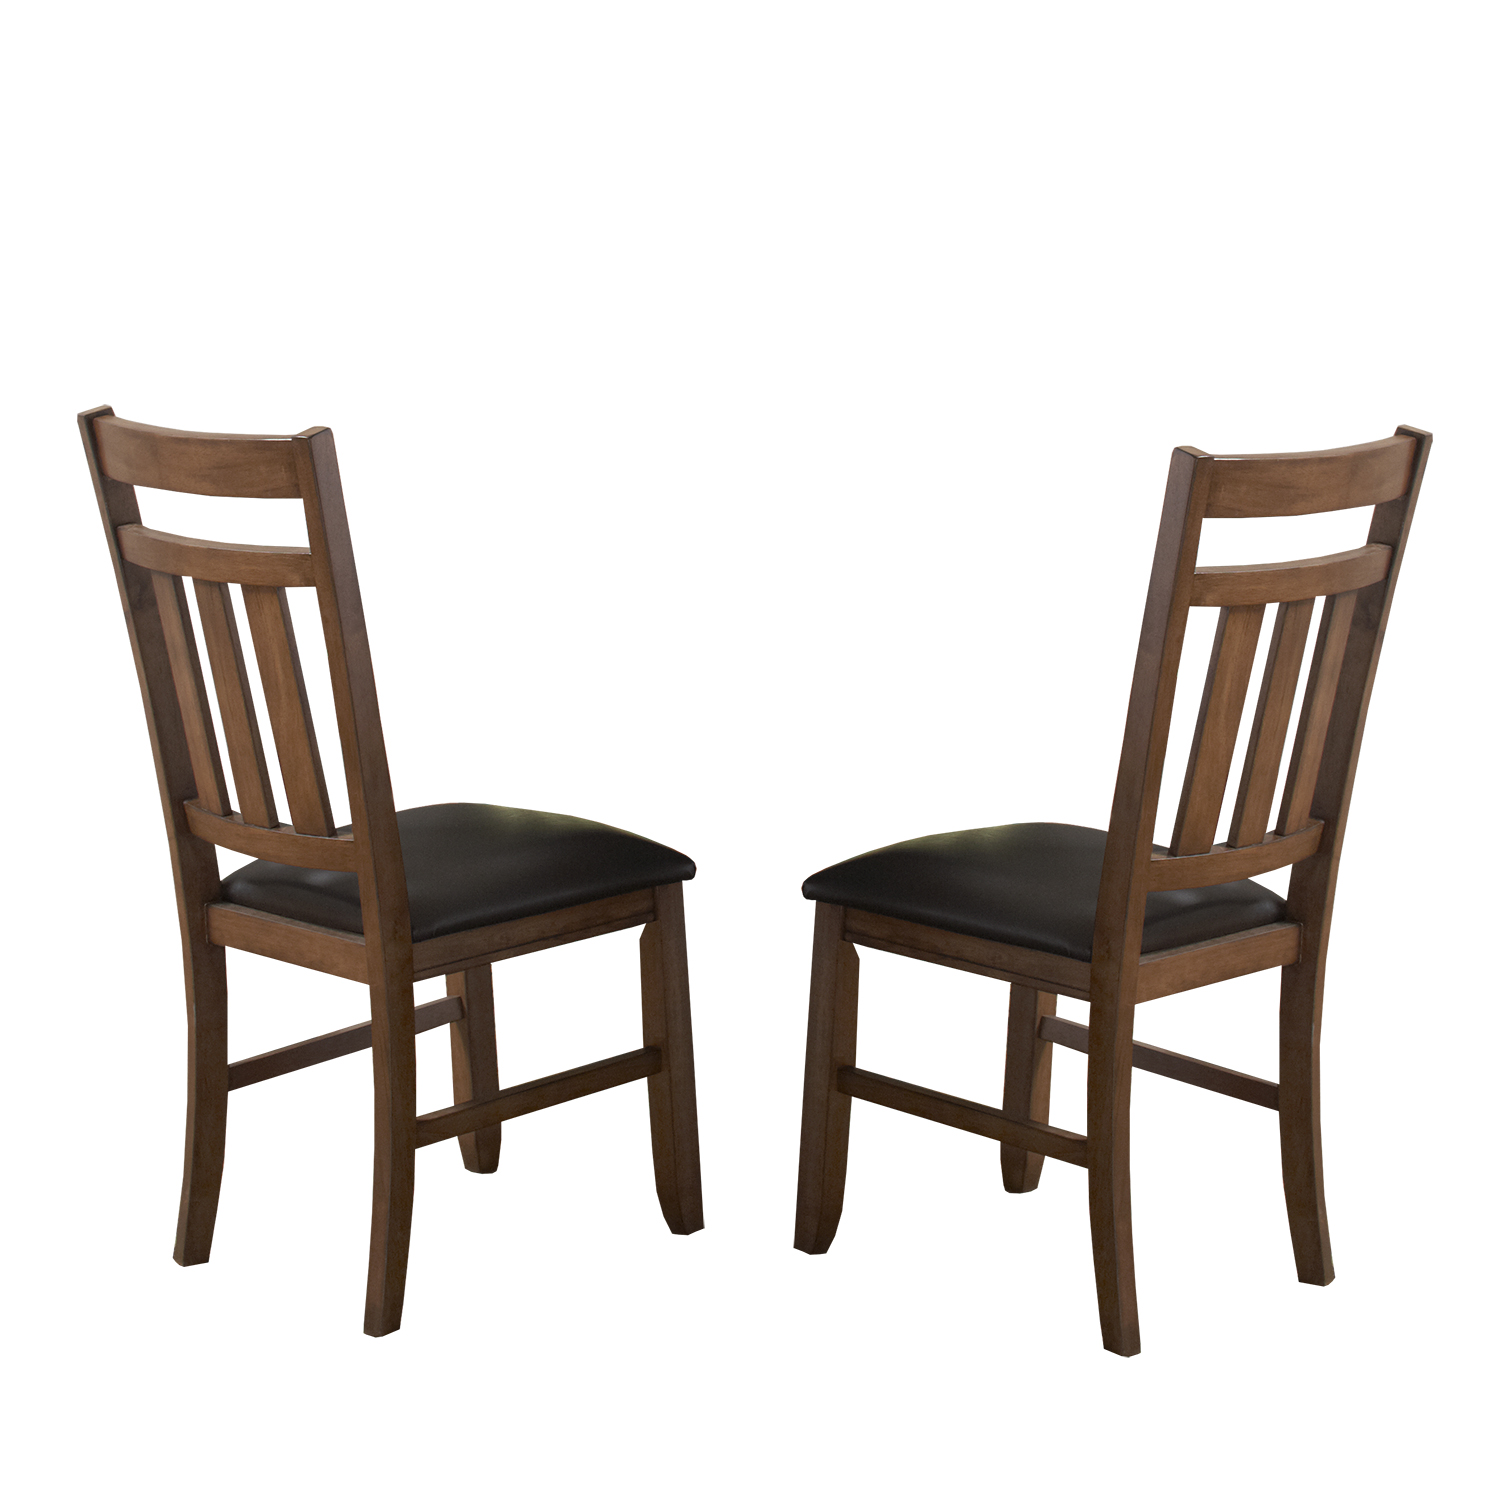 Oxford Creek Dining Chairs in Warm Oak Finish (Set of 2)